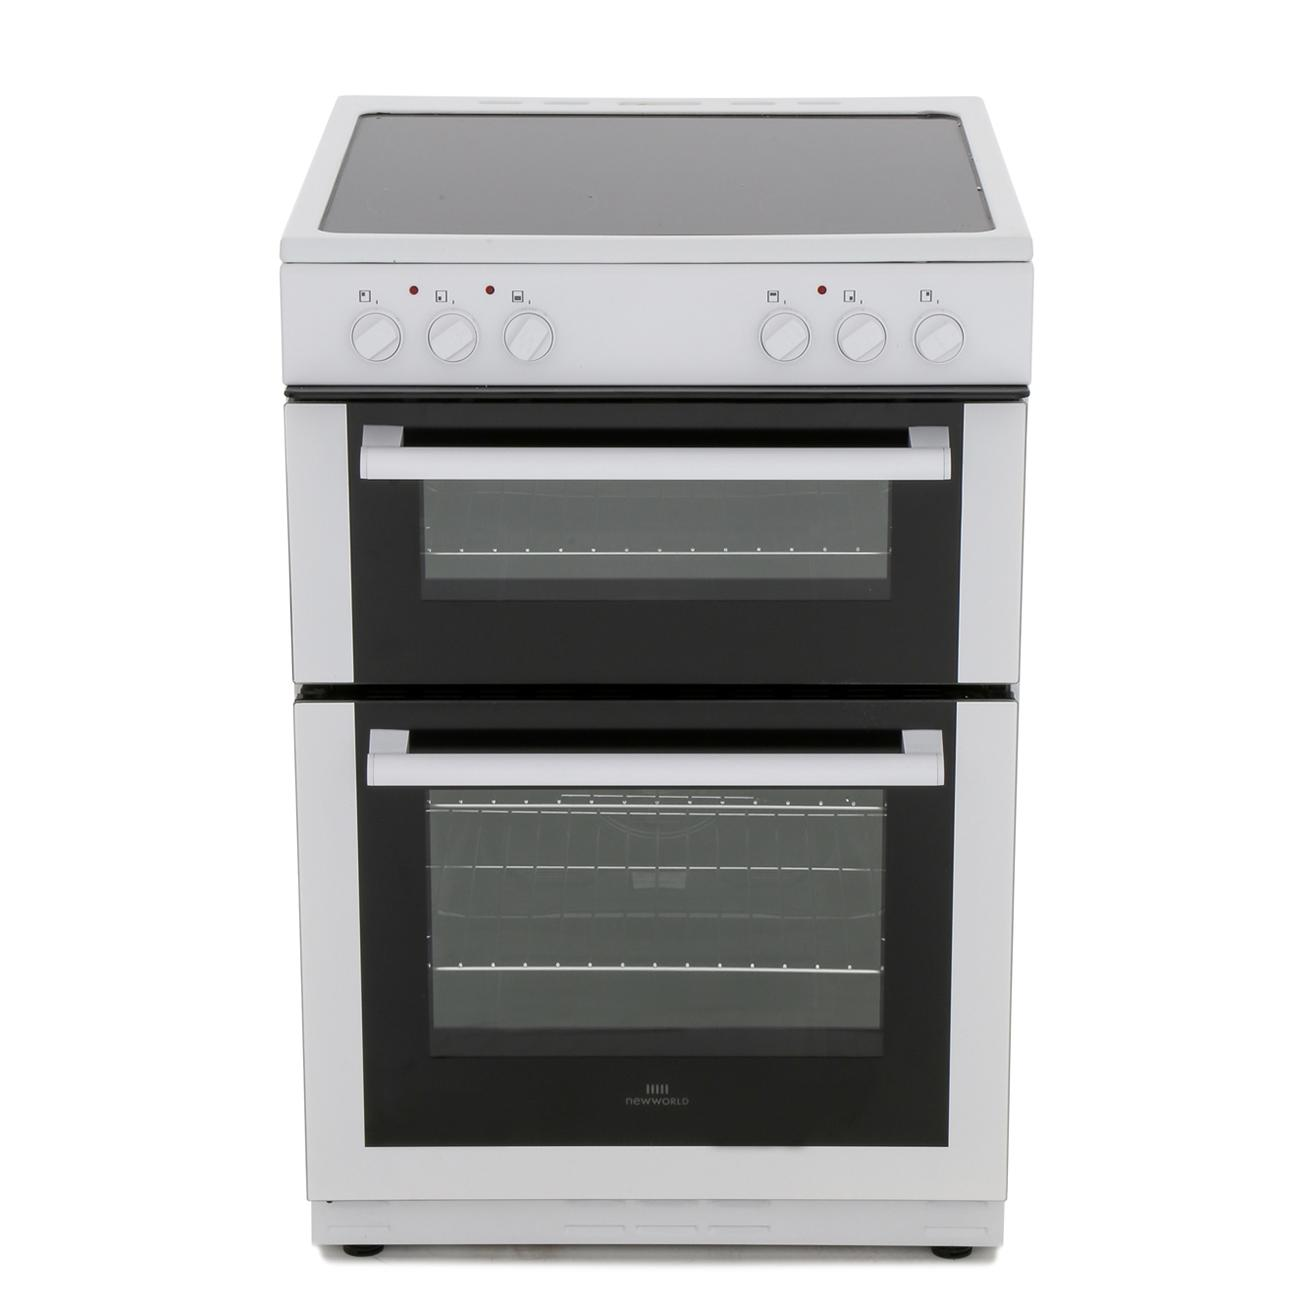 New World 60EDOC White Ceramic Electric Cooker with Double Oven